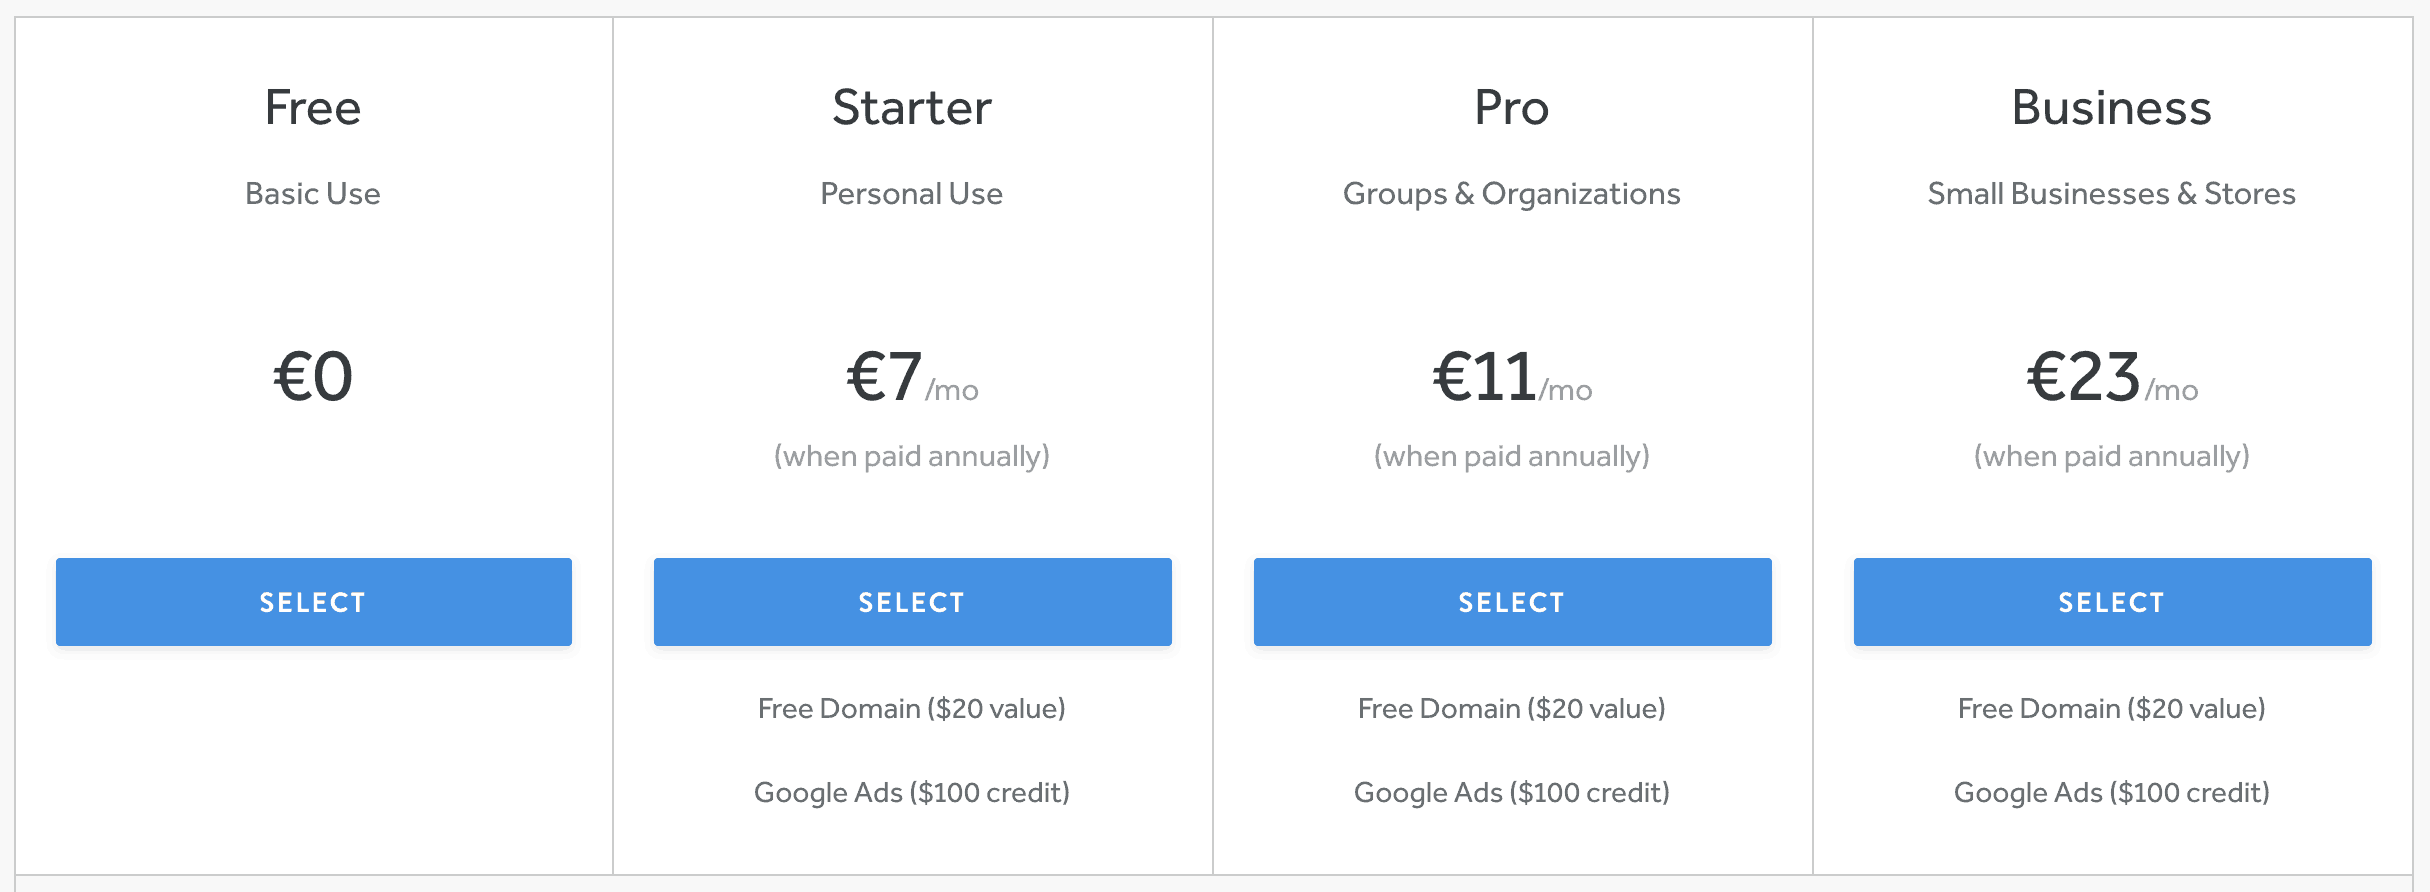 weebly pricing without month to month prices